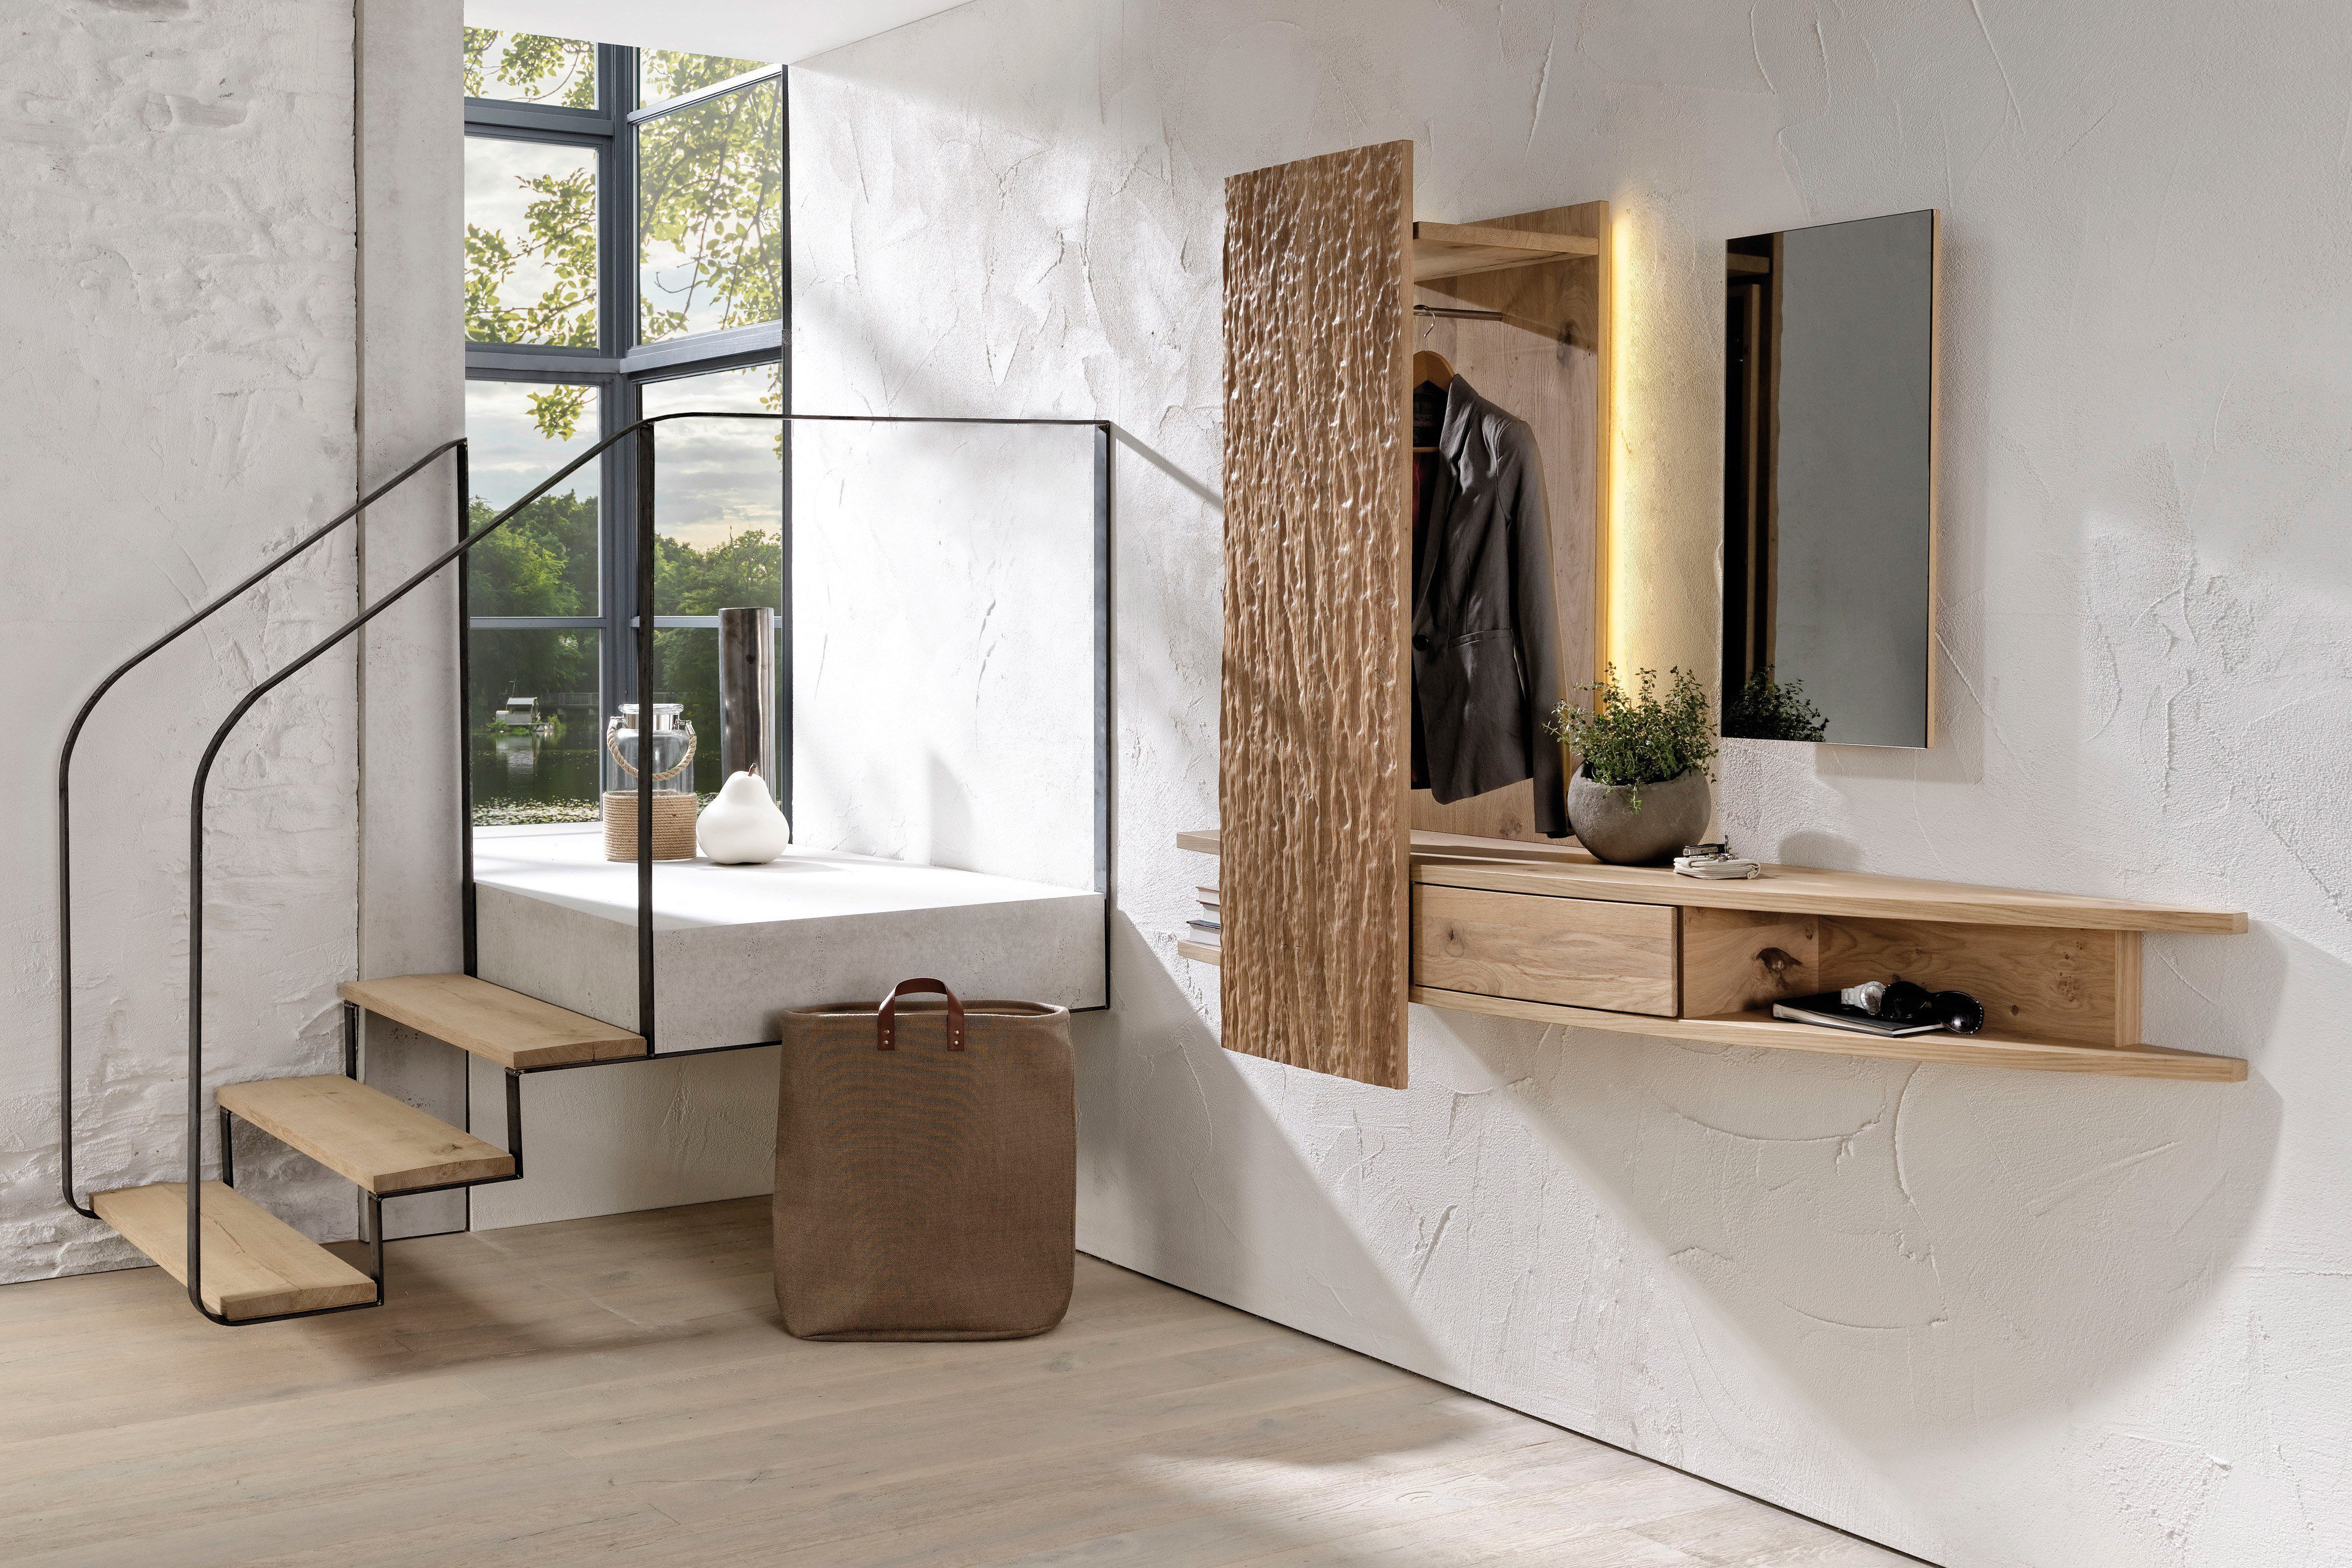 voglauer garderobe v organo orlinda wildeiche rustiko m bel letz ihr online shop. Black Bedroom Furniture Sets. Home Design Ideas